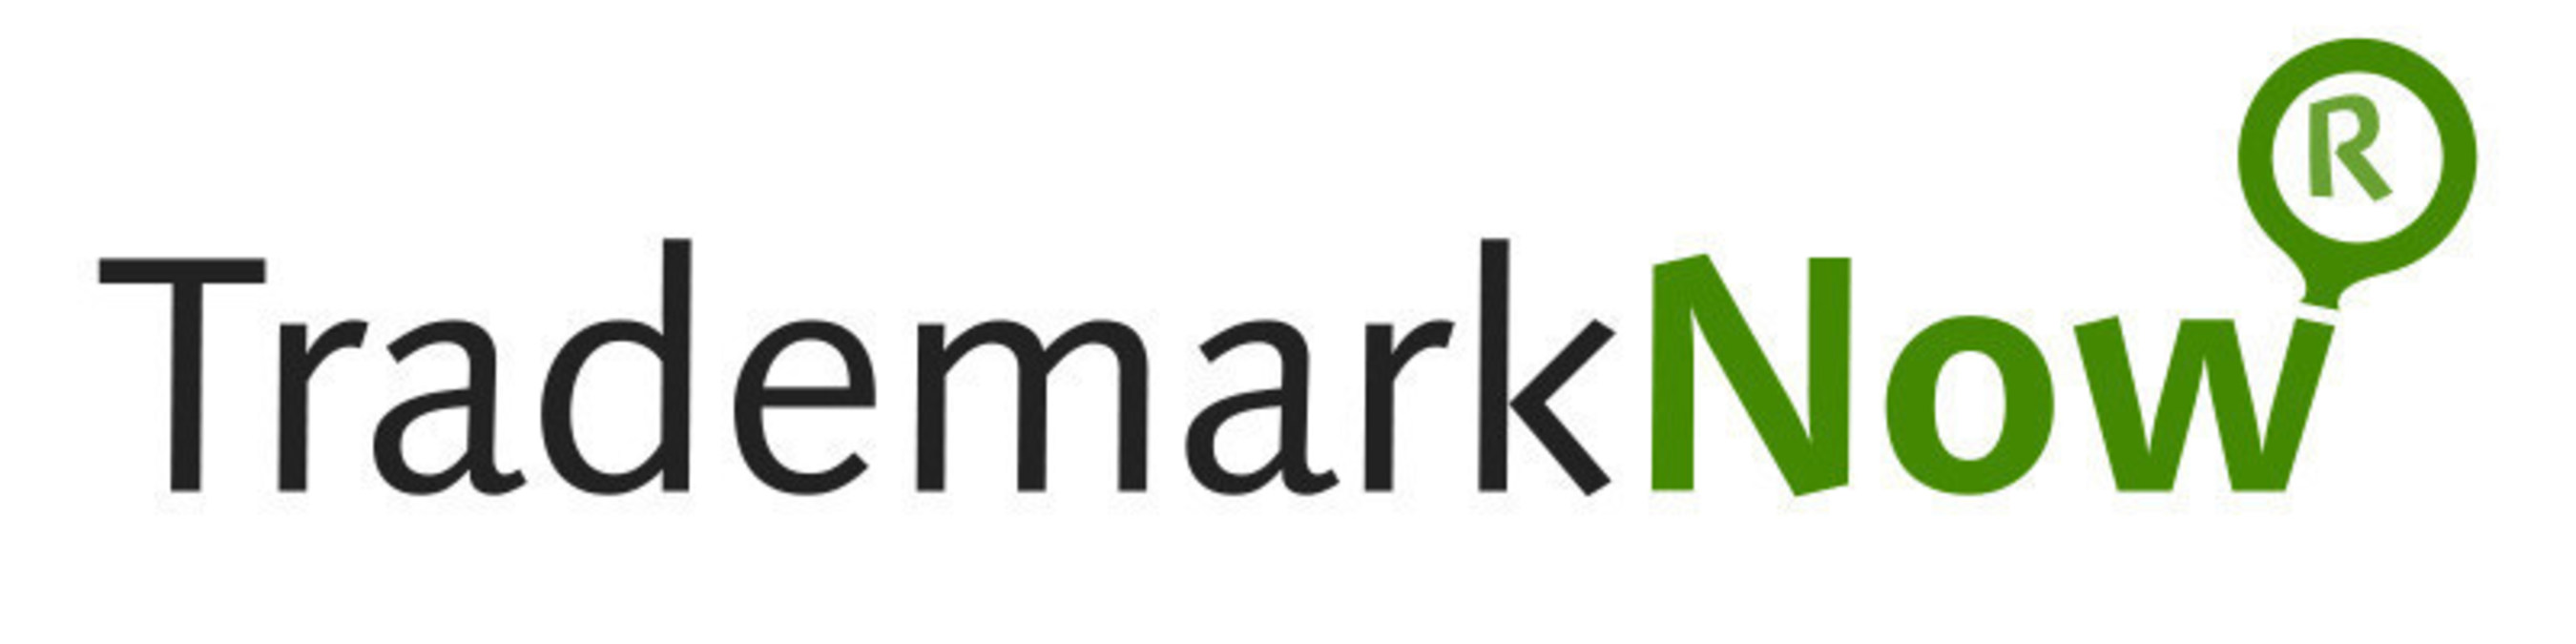 TrademarkNow Expands Common Law Search With Apple's iTunes, Making Trademark Searches Using TrademarkNow More Likely to Discover Unregistered Trademarks in Use Via Digit